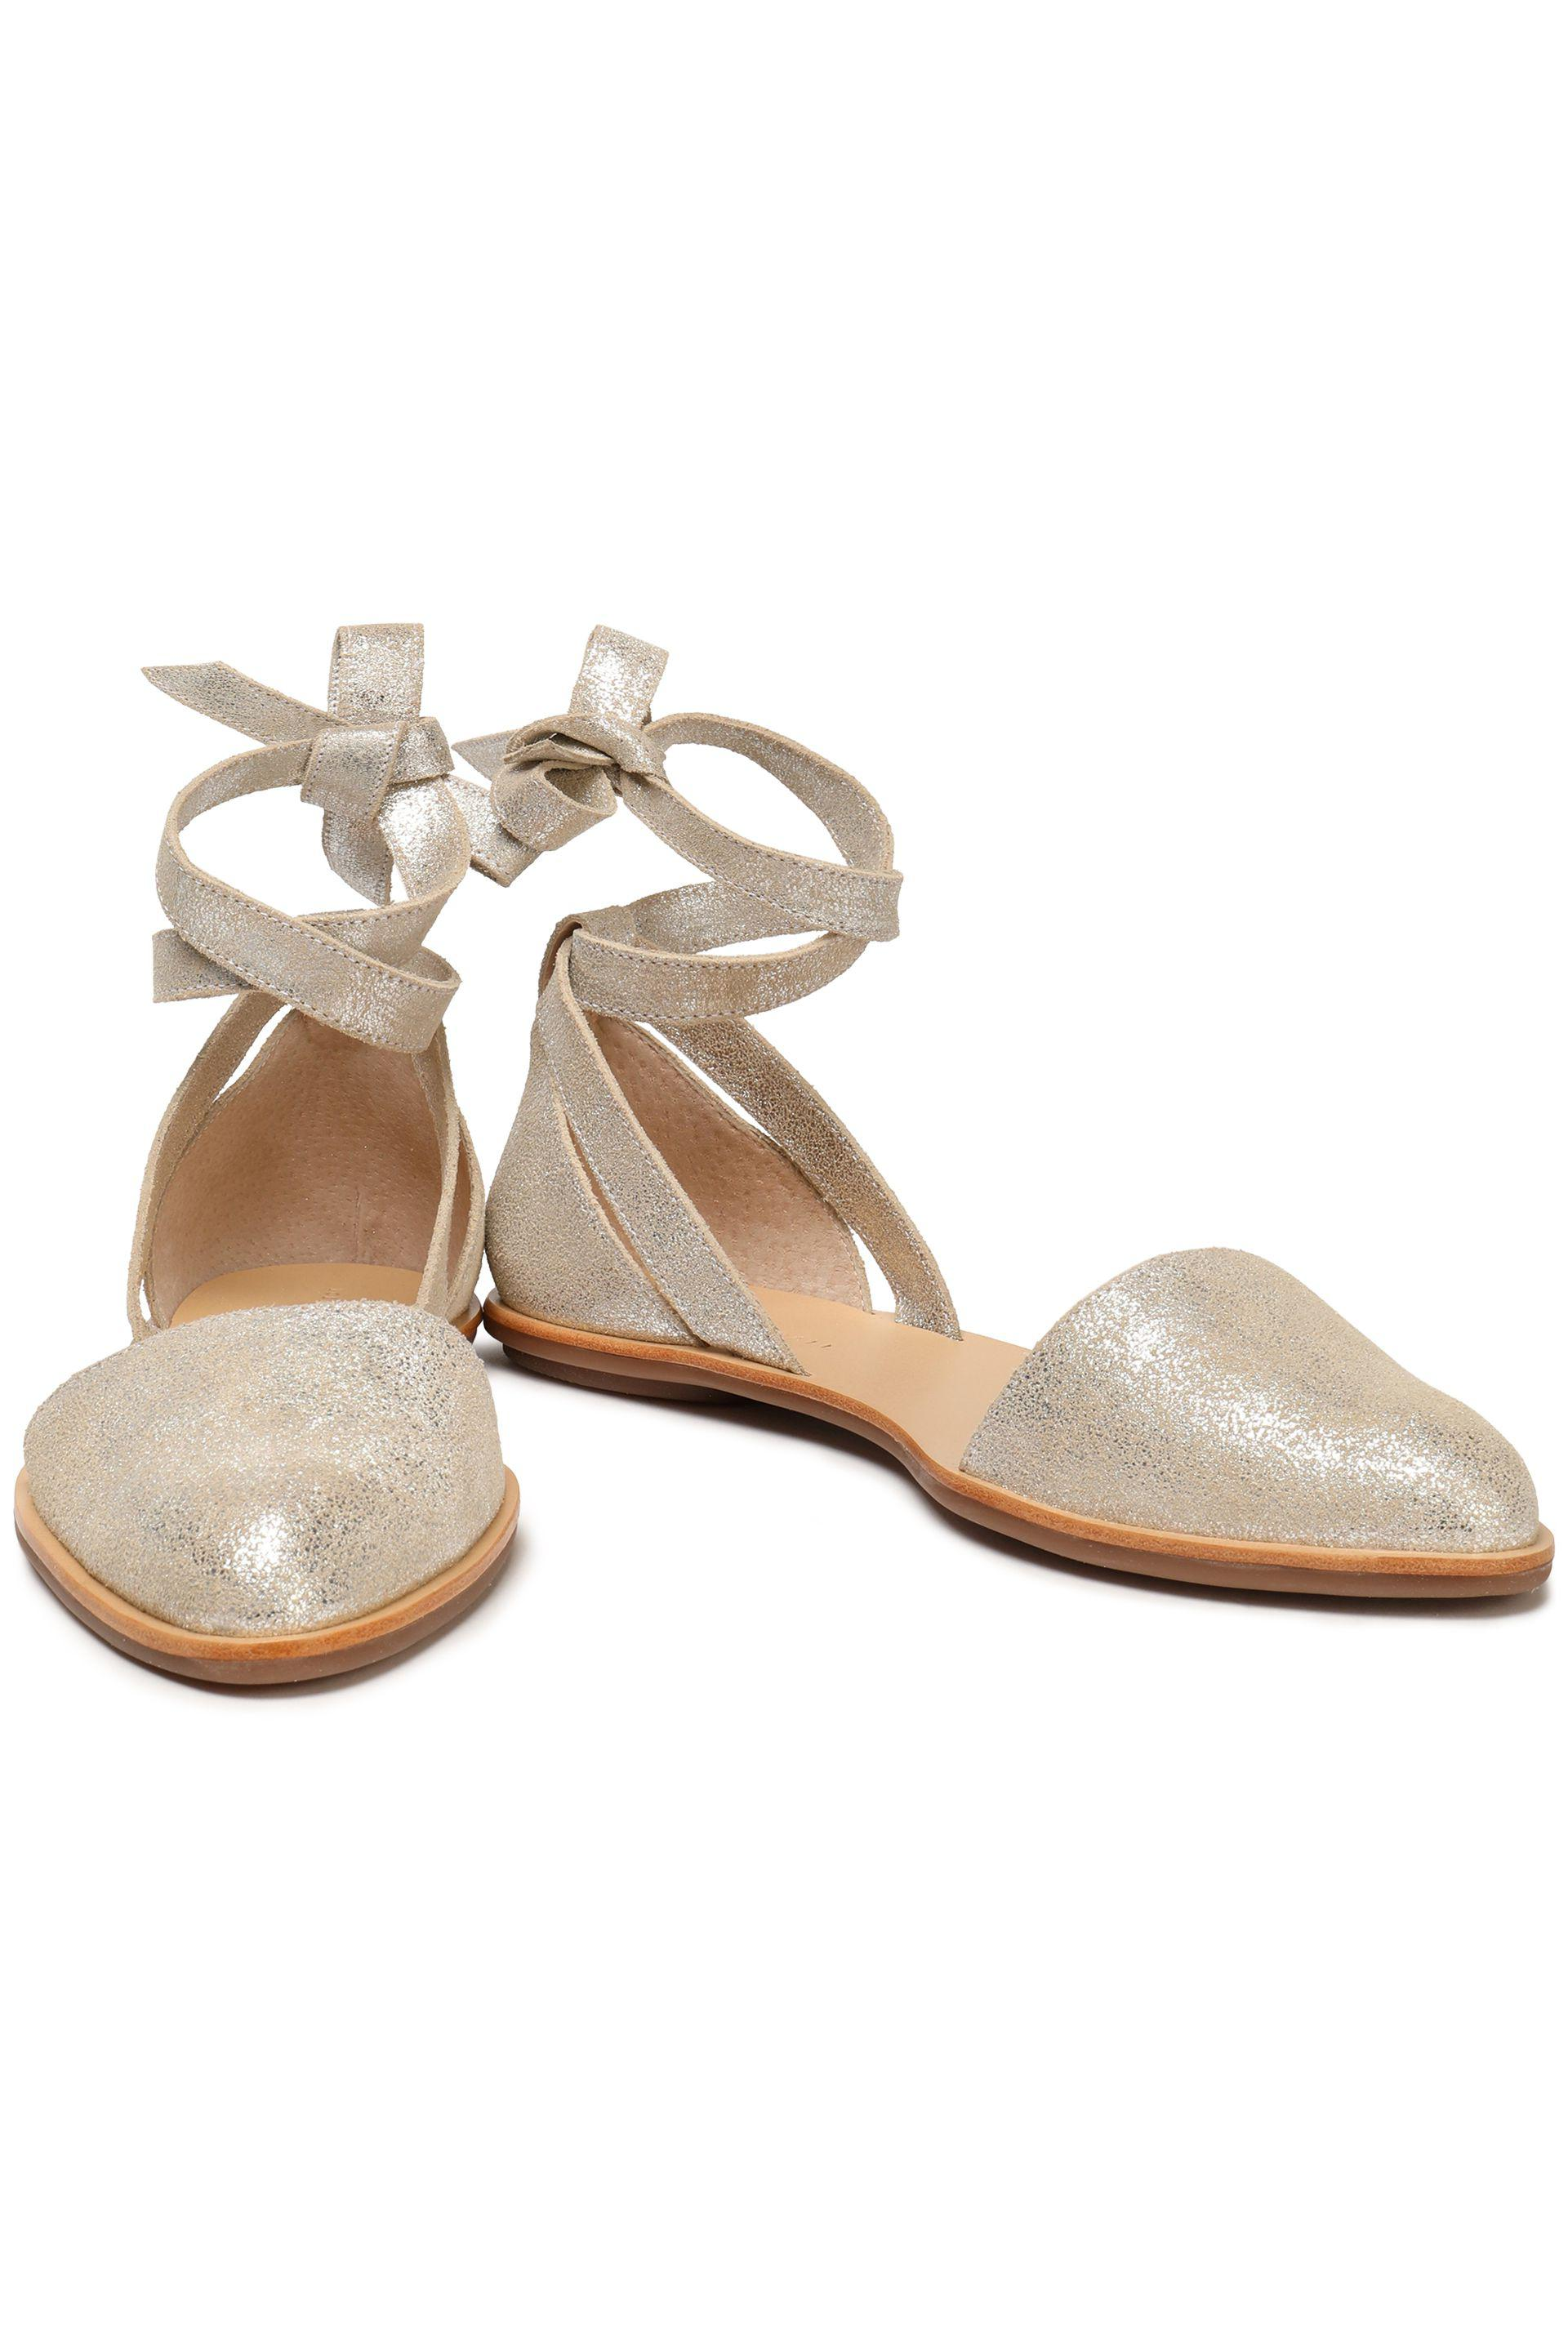 Clearance Authentic Loeffler Randall Woman Dina Lace-up Metallic Suede Point-toe Flats Size 7 Outlet Cheap Authentic Buy Cheap Official Site Huge Surprise Sale Online Visit New 2f0MH8i0v